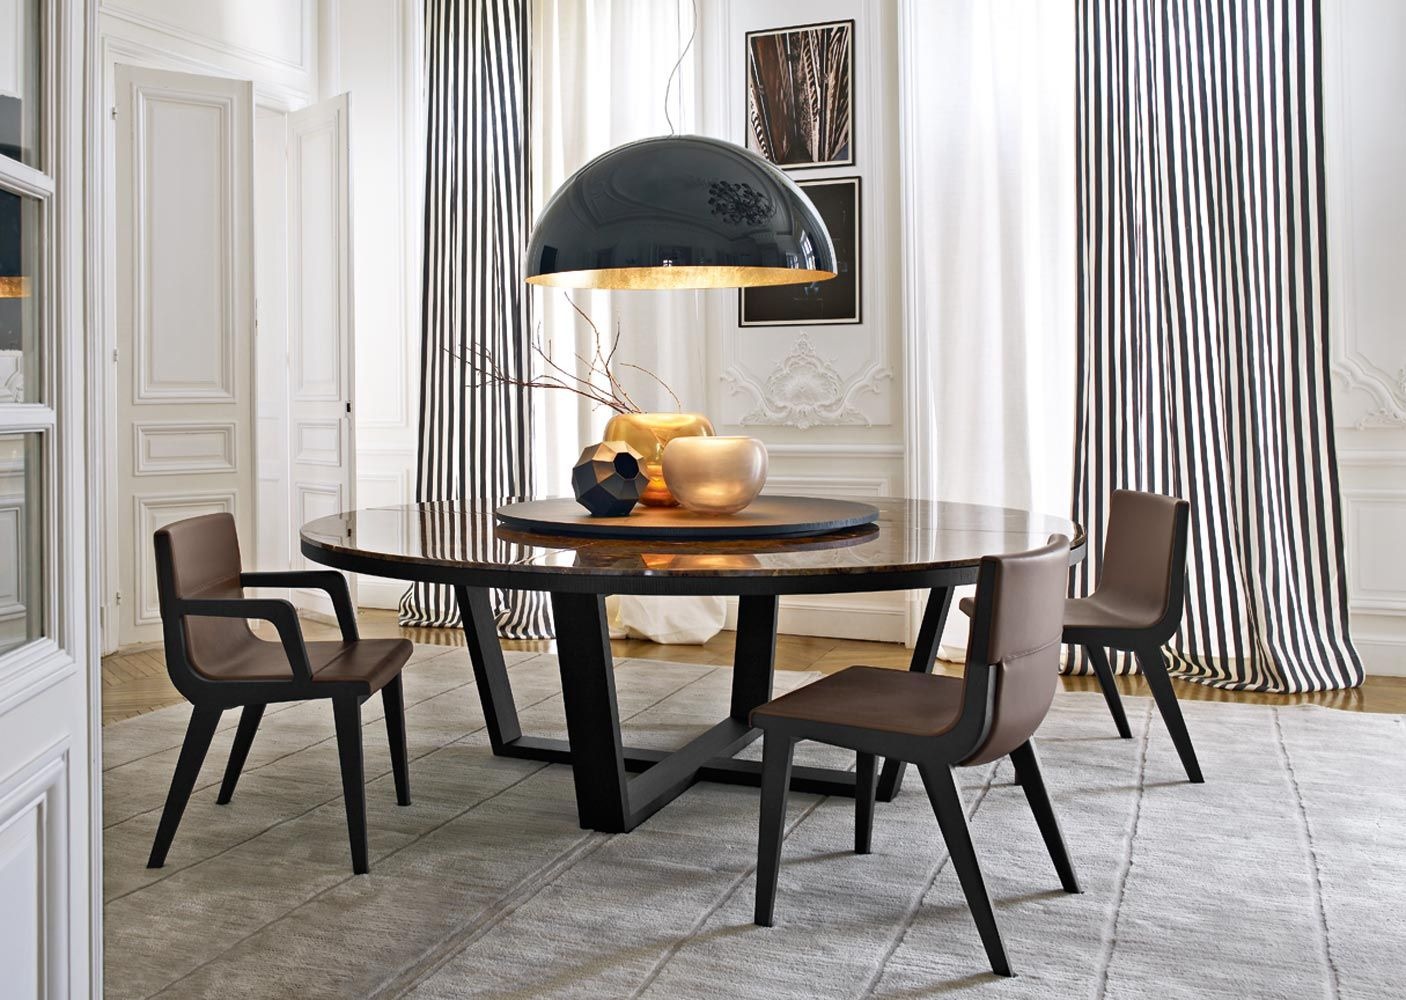 B&b Italia Maxalto Xilos Tables Xilos Collection Maxalto Design Antonio